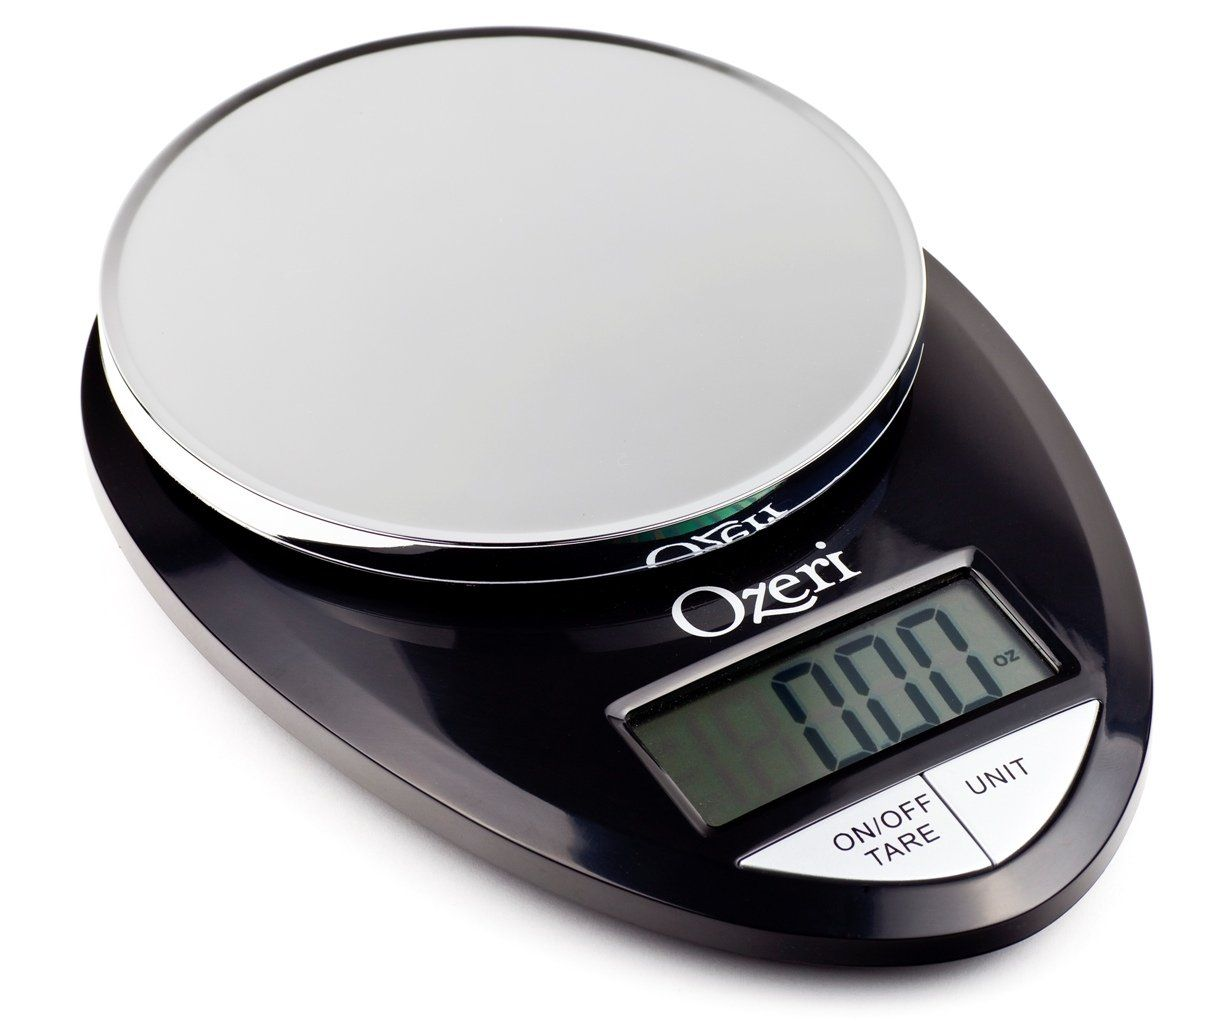 A lot of clients want to know which food scale to buy any